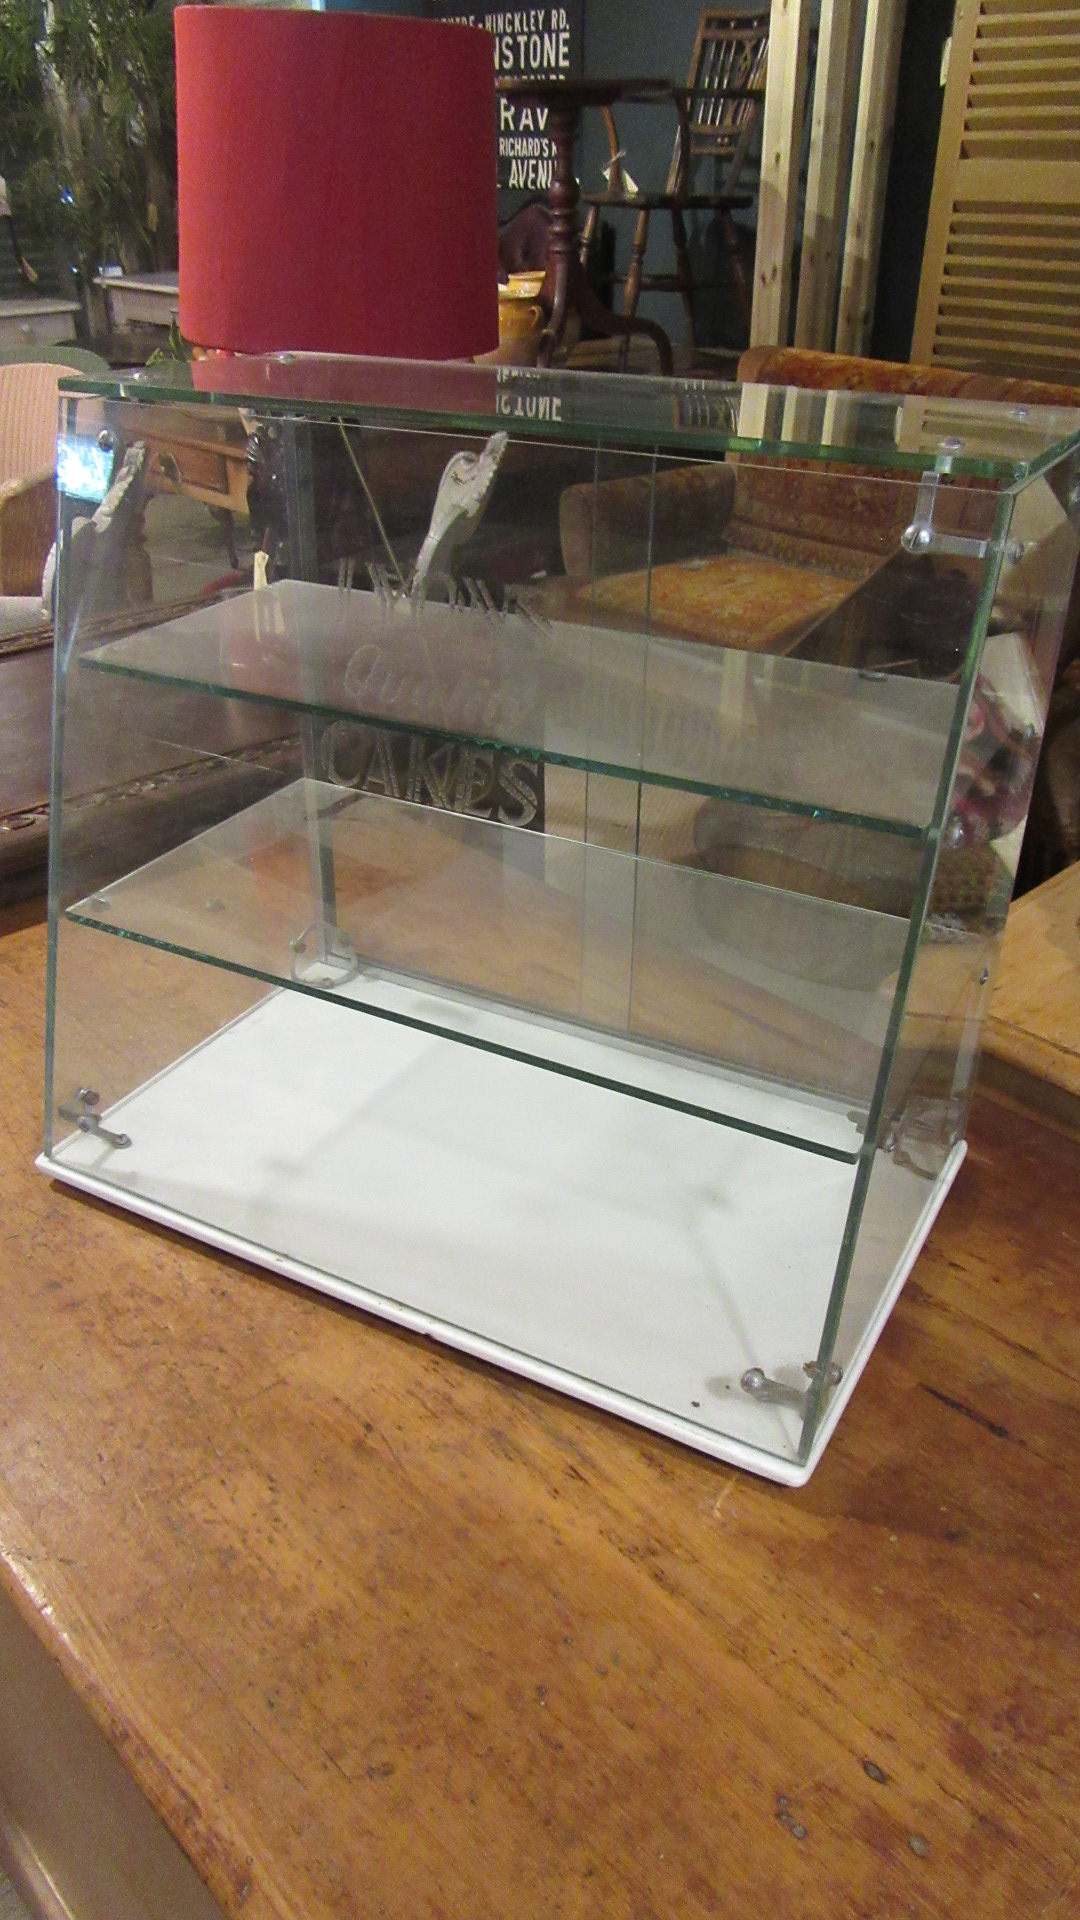 VINTAGE LYONS CAKES SHOP DISPLAY CABINET